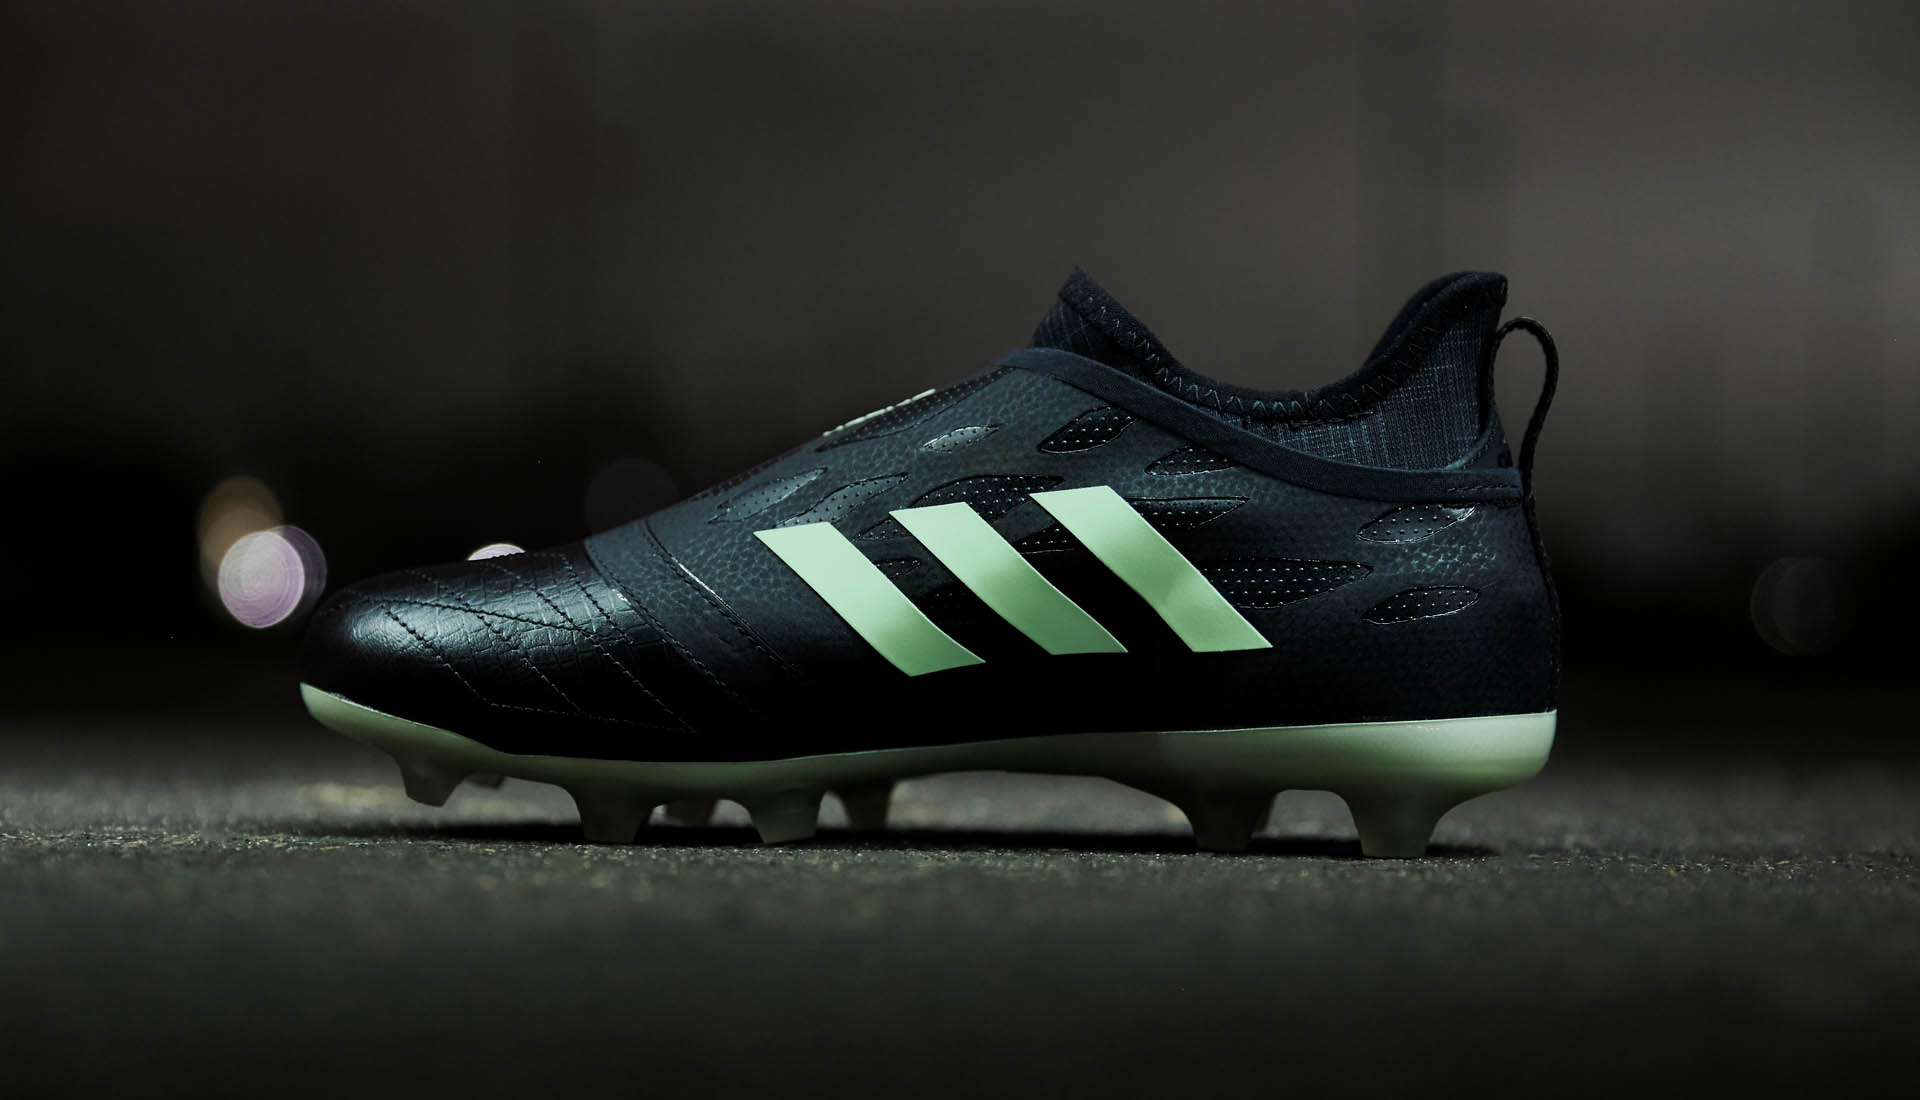 Adidas Launch The Glitch 18 Nocturnal Skin Soccerbible